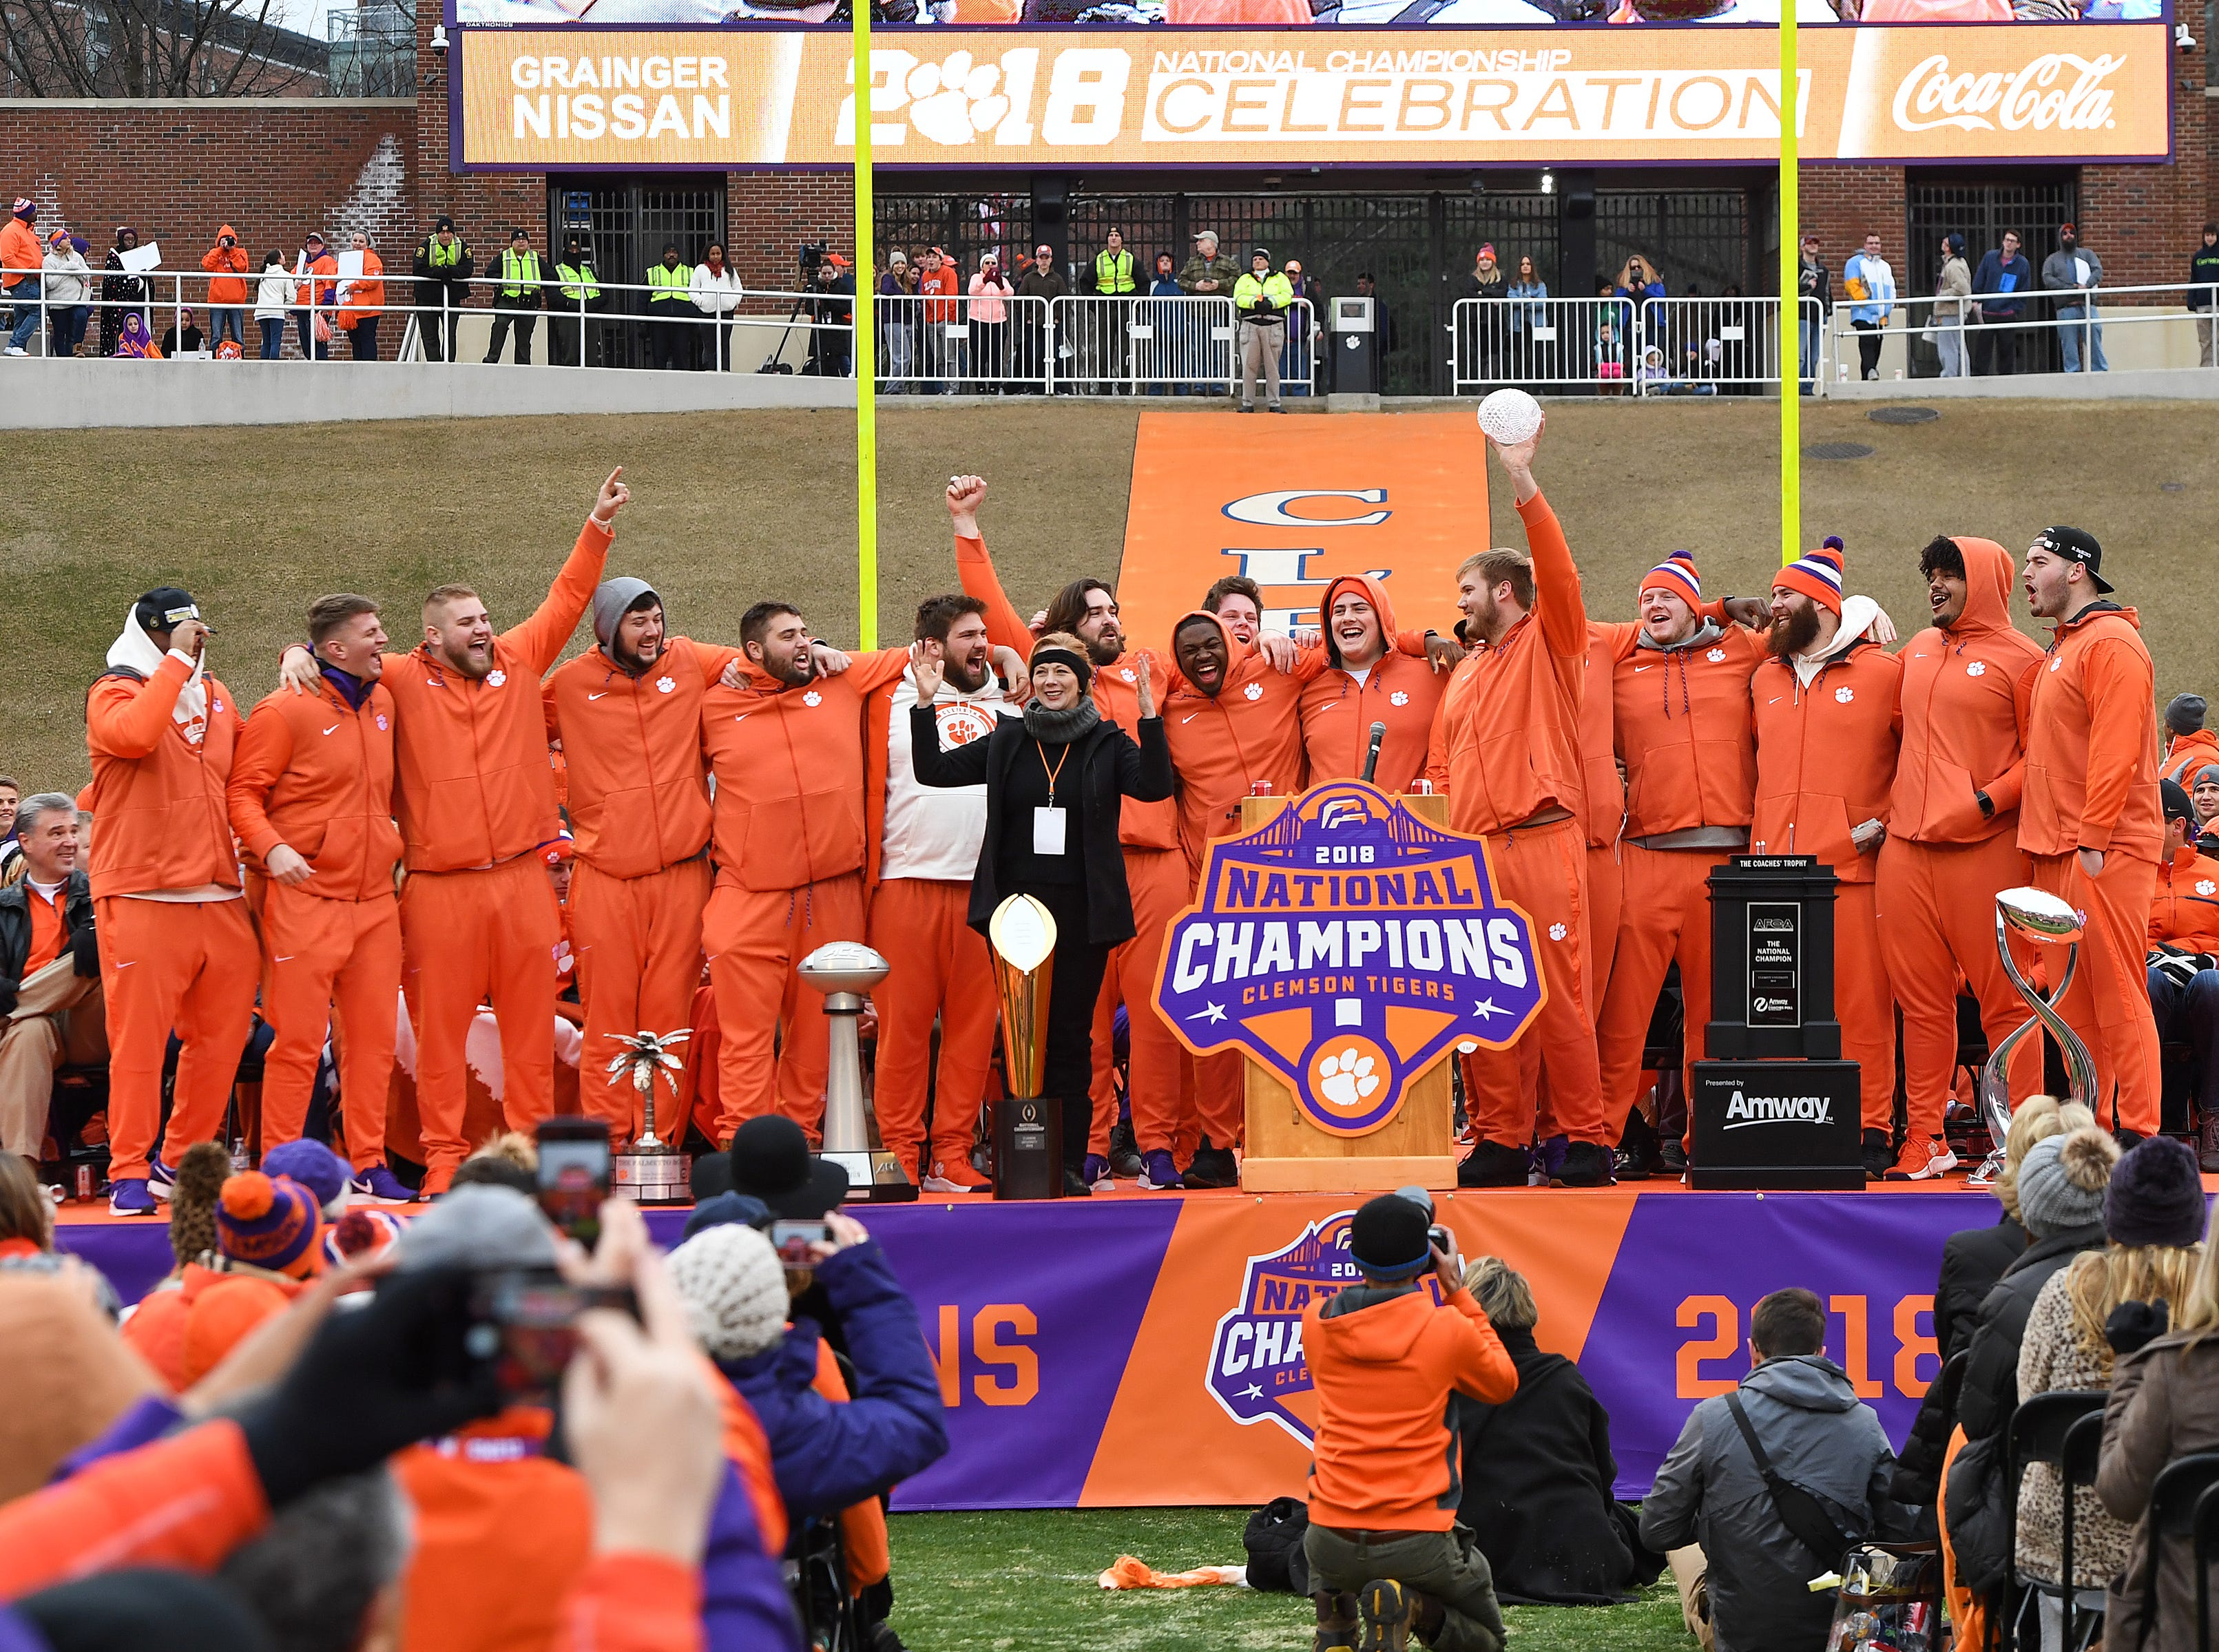 Clemson offensive linemen pose for a photo during the Tigers National Championship celebration Saturday, January 12, 2019 at Clemson's Memorial Stadium.